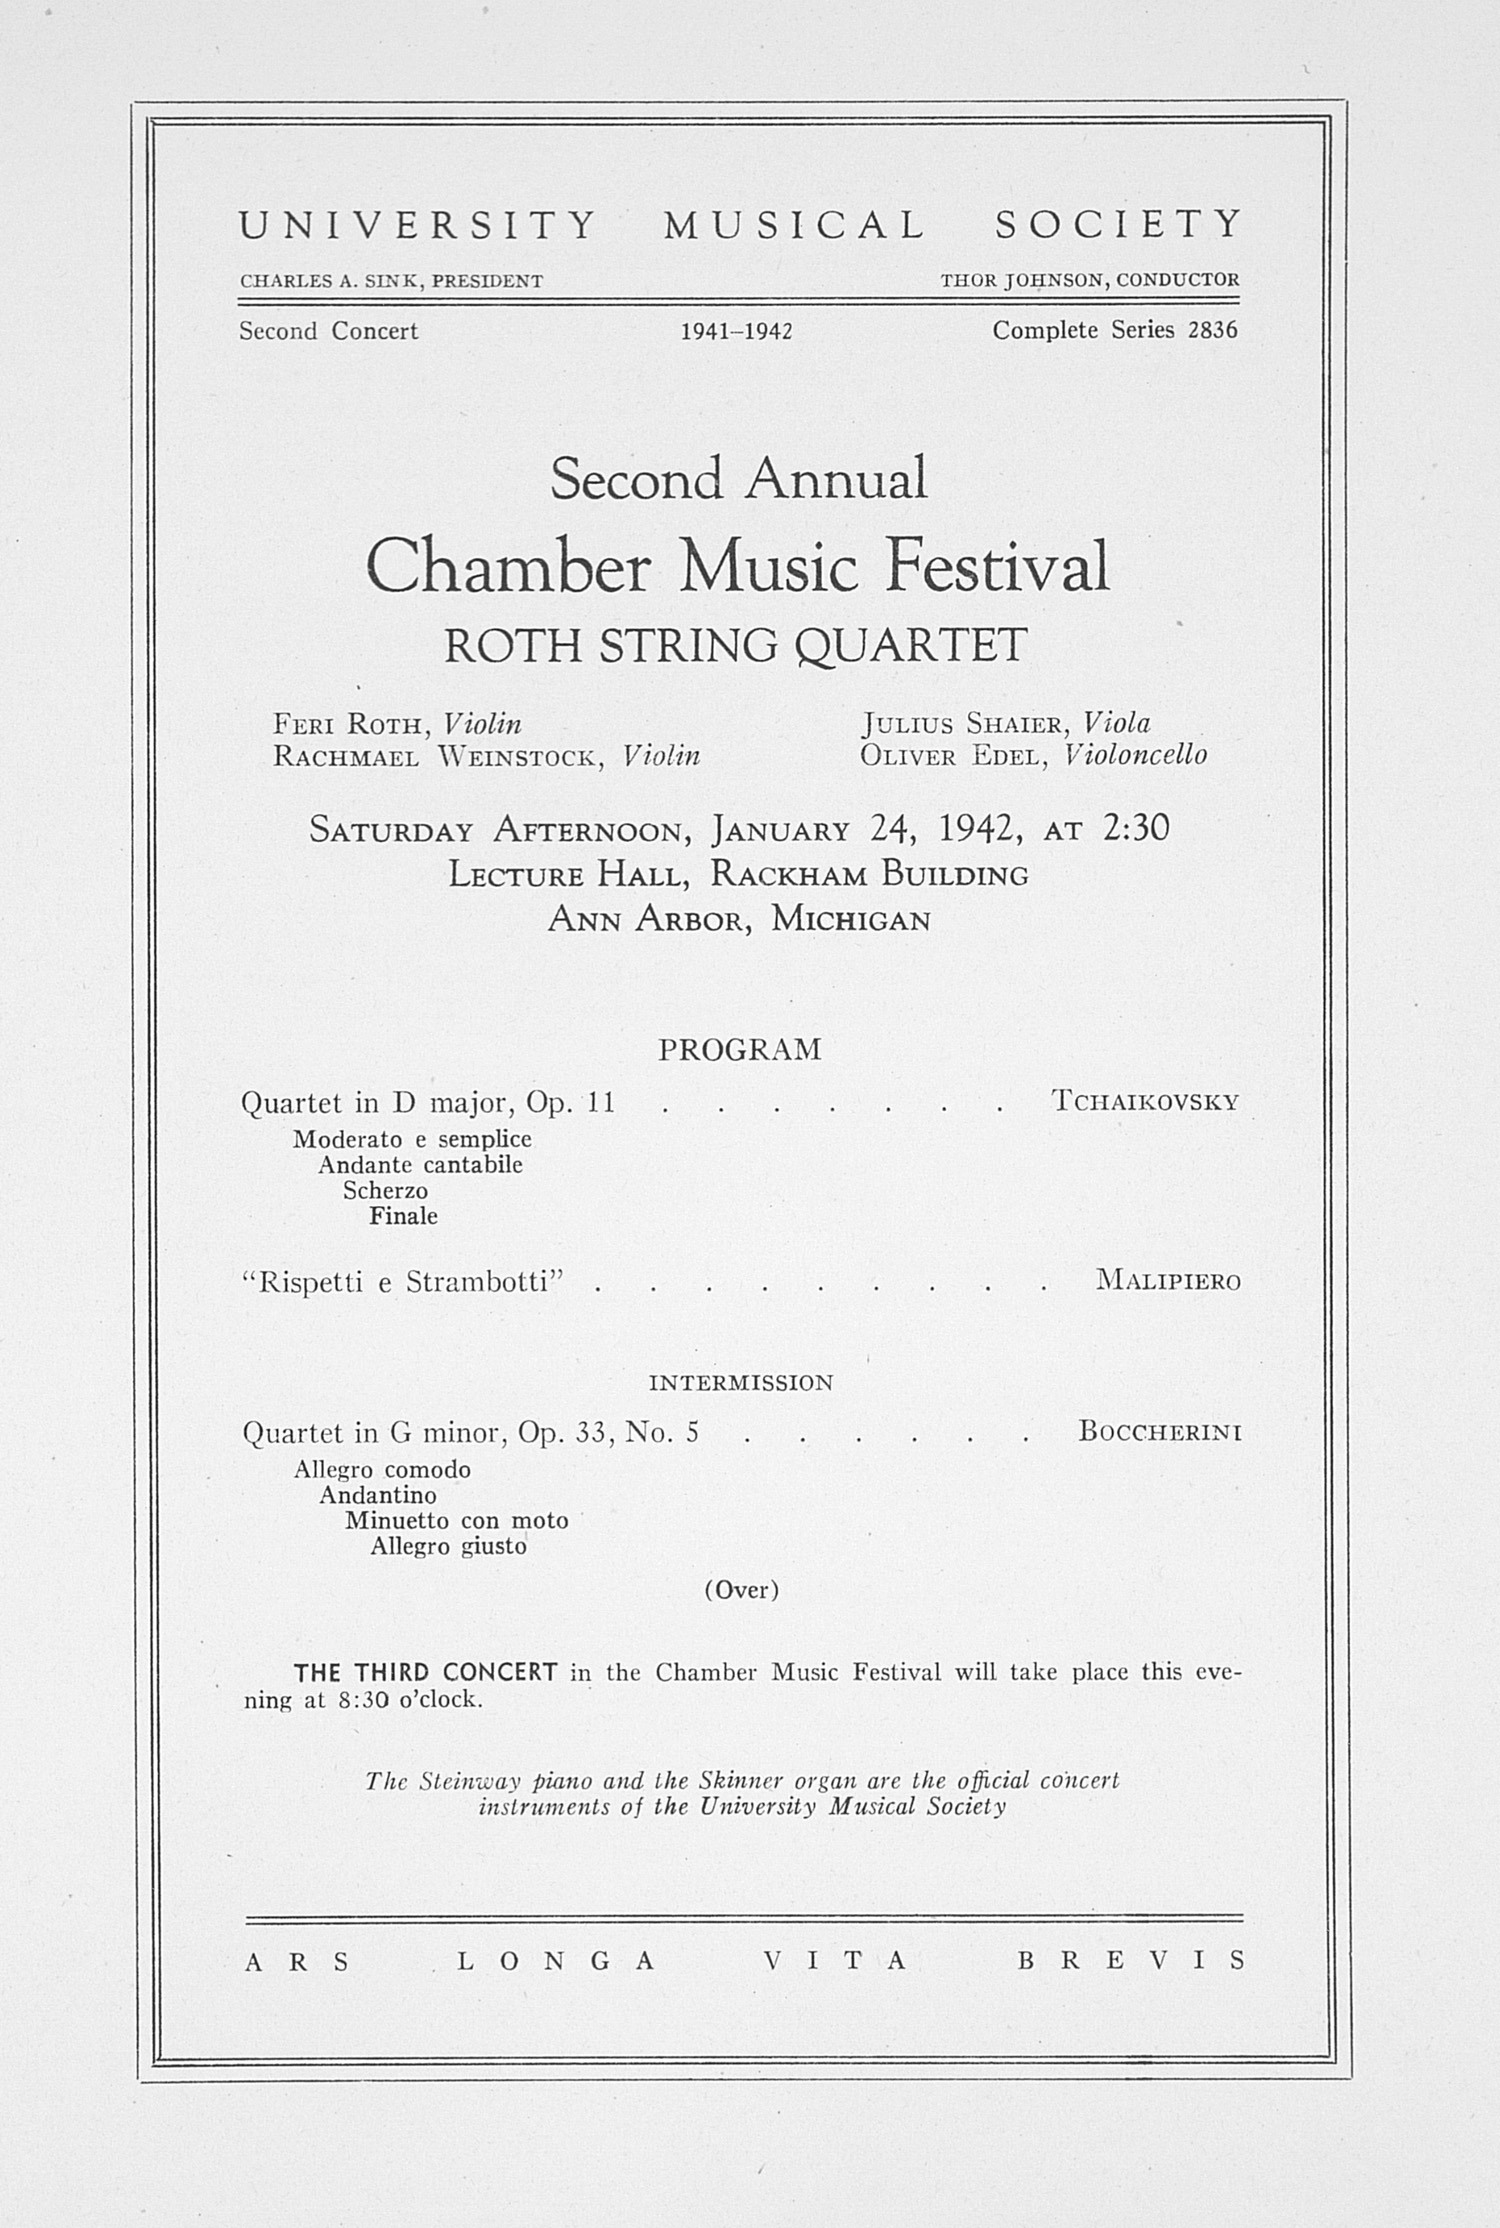 UMS Concert Program, January 24, 1942: Second Annual Chamber Music Festival -- Roth String Quartet image